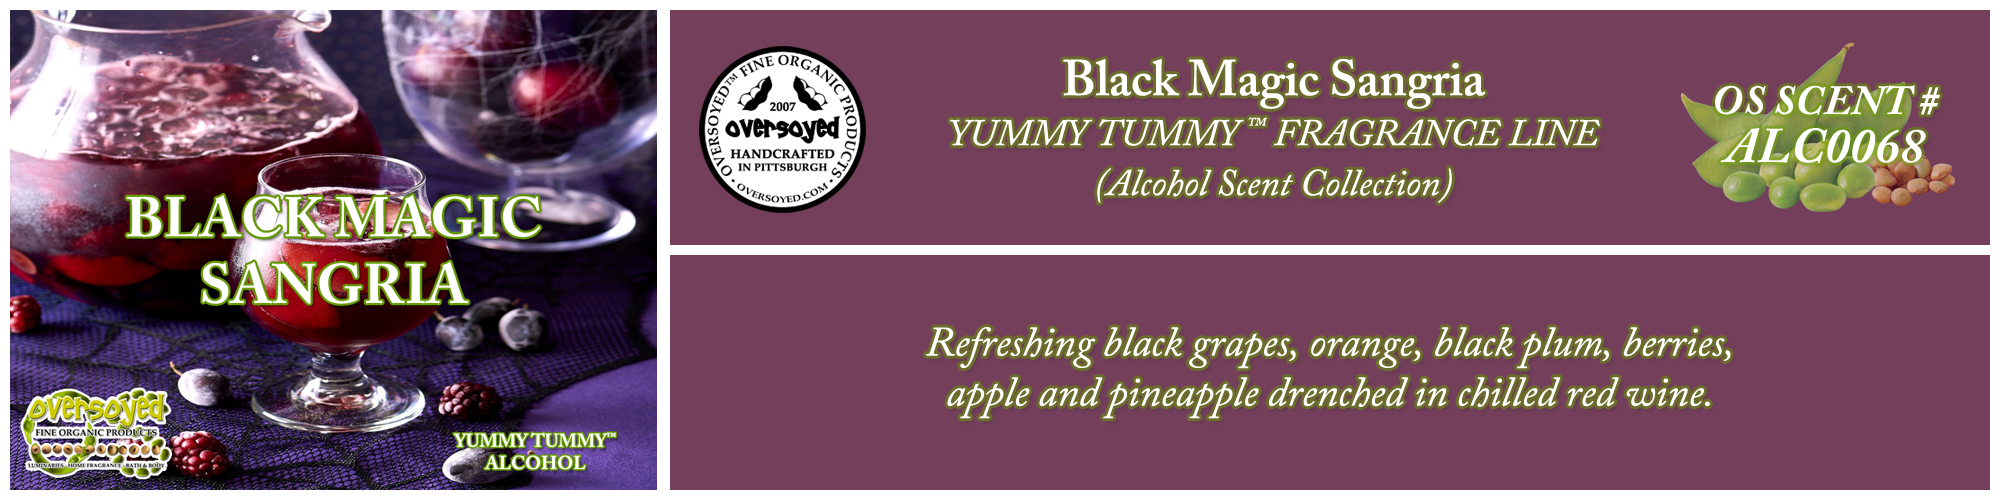 Black Magic Sangria Handcrafted Products Collection